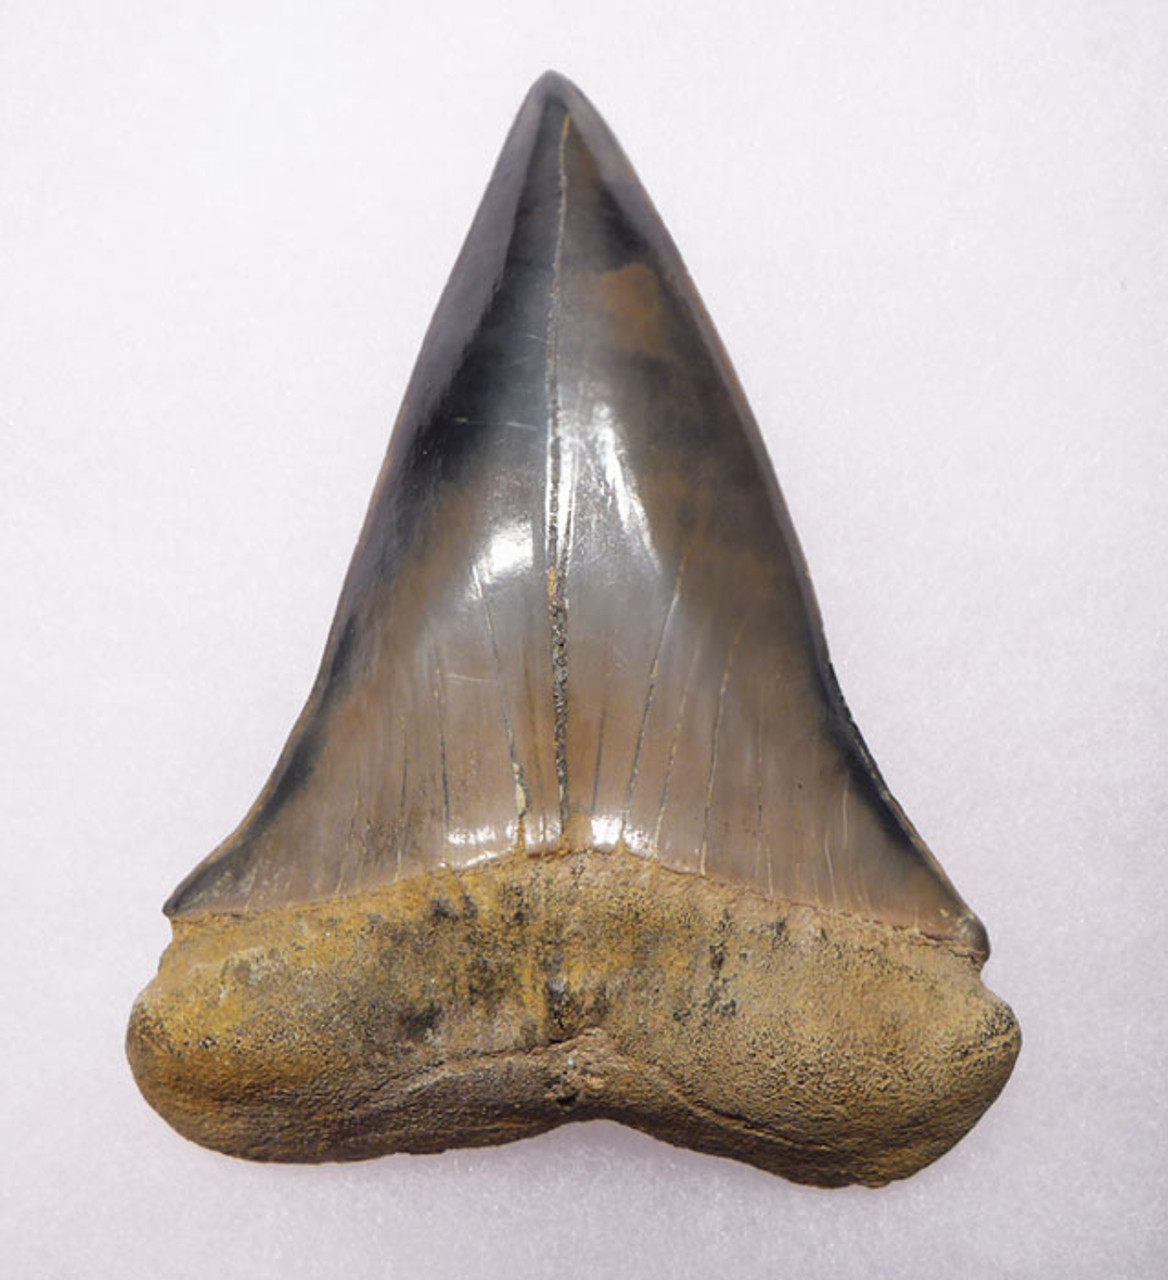 SHX039 - ONE OF OUR LARGEST EVER 3 INCH FOSSIL ISURUS HASTALIS ( EXTINCT WHITE SHARK ) TOOTH FROM RARE SITE IN BELGIUM